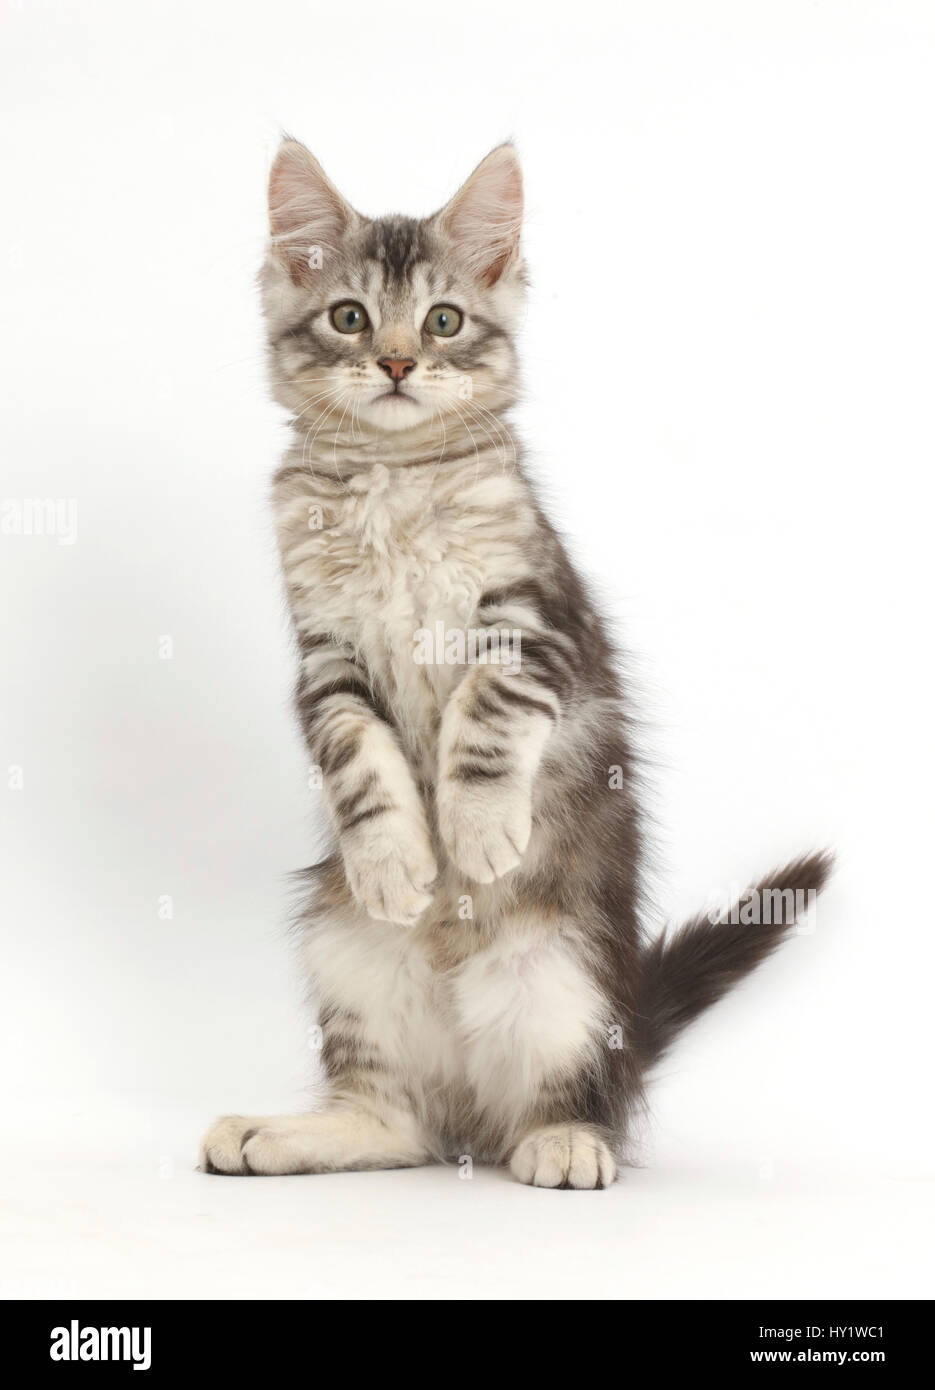 Silver tabby kitten, Loki, 11 weeks, standing on hind legs like a meerkat with front paws hanging. - Stock Image